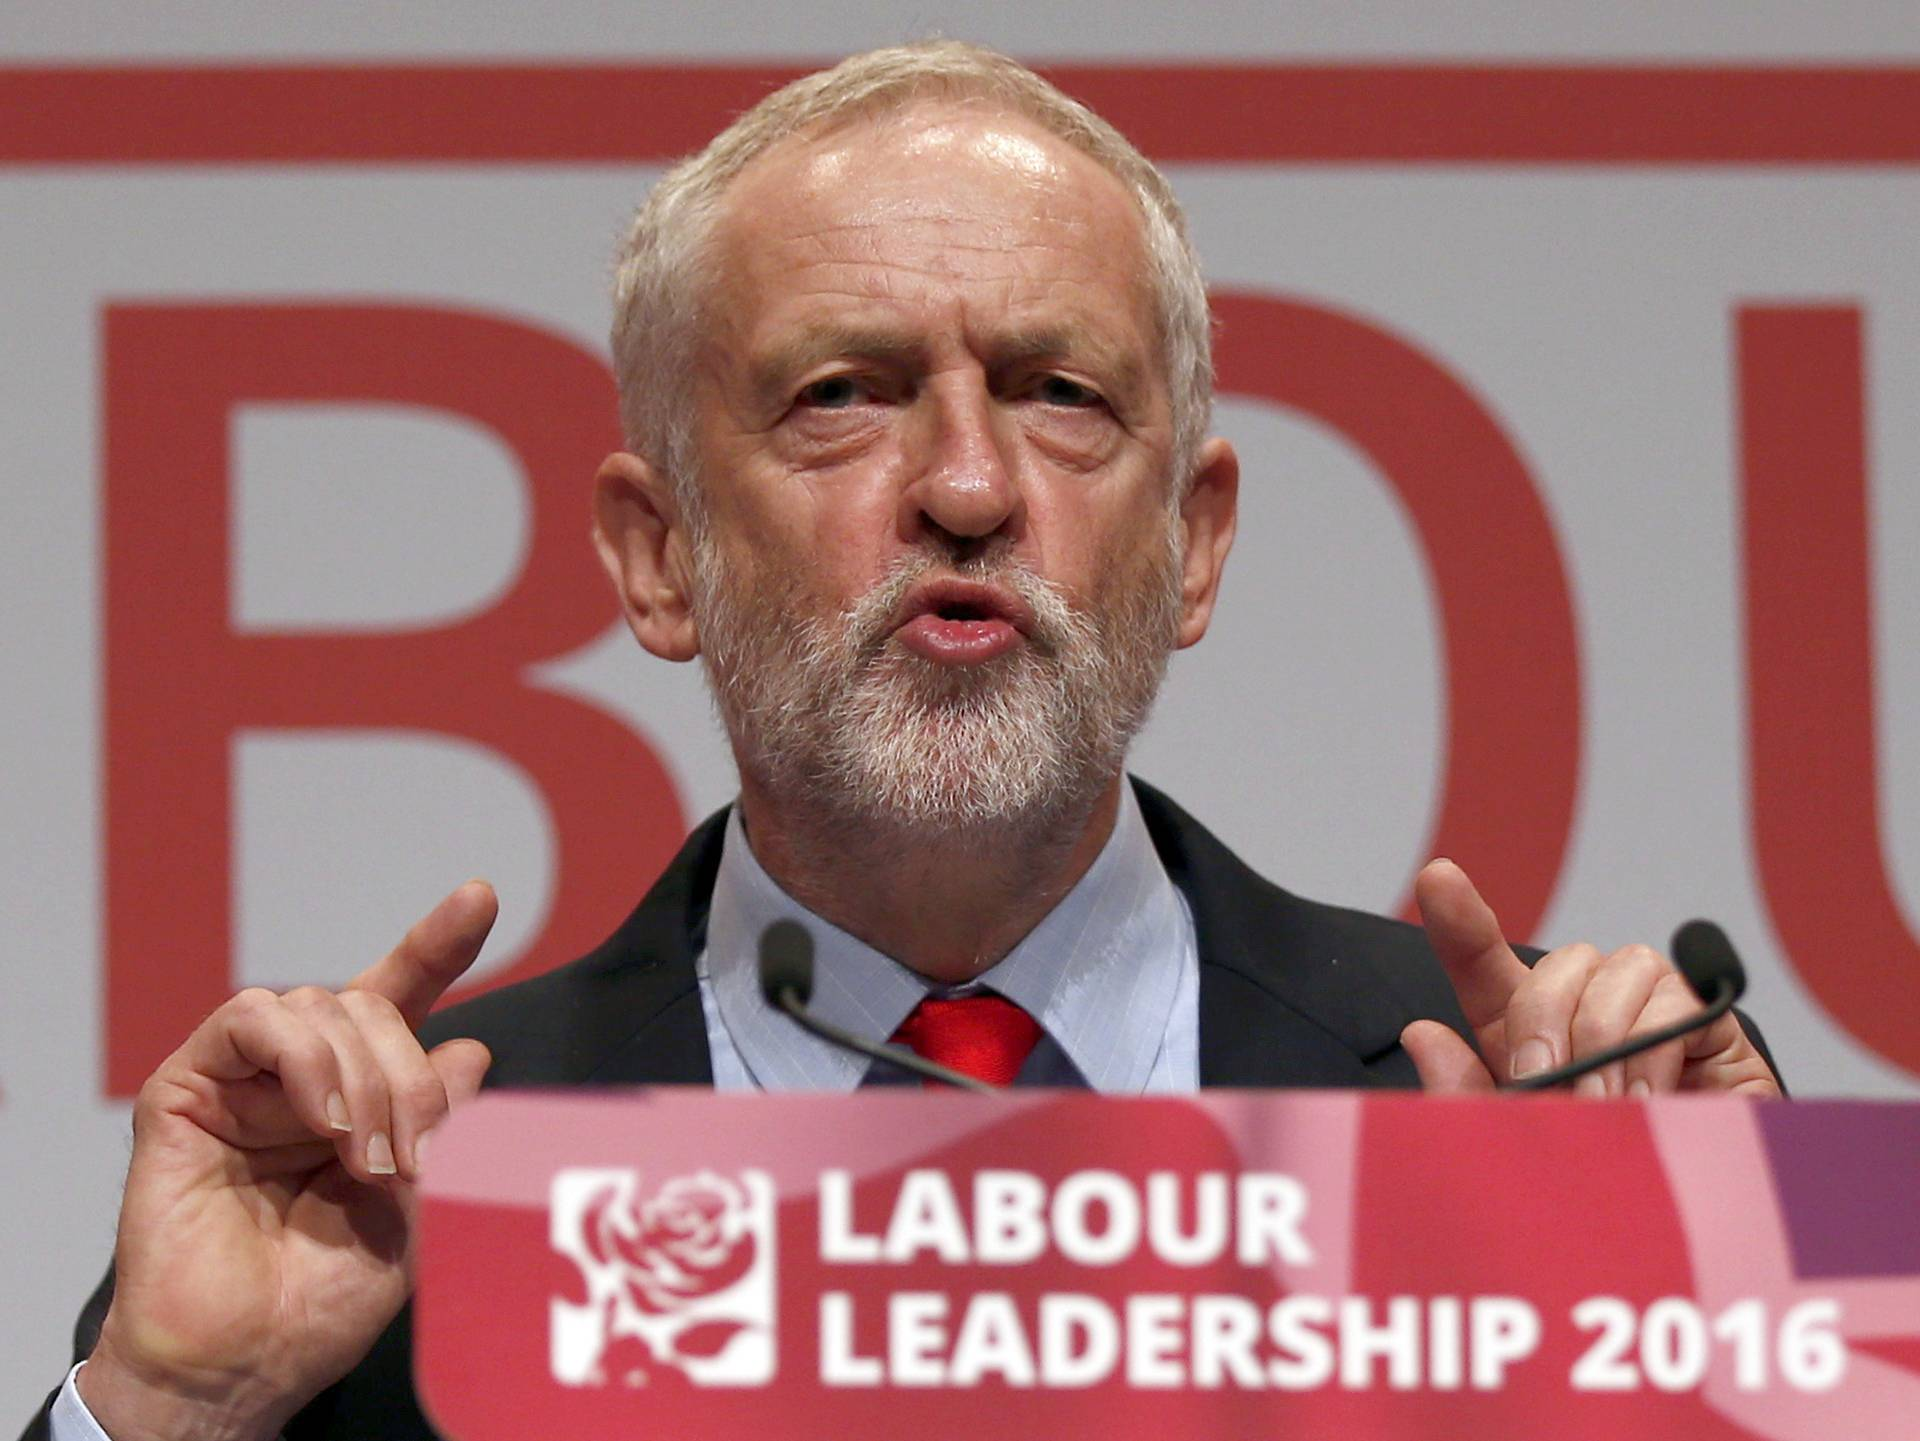 The leader of Britain's opposition Labour Party, Jeremy Corbyn, speaks after the announcement of his victory in the party's leadership election, in Liverpool